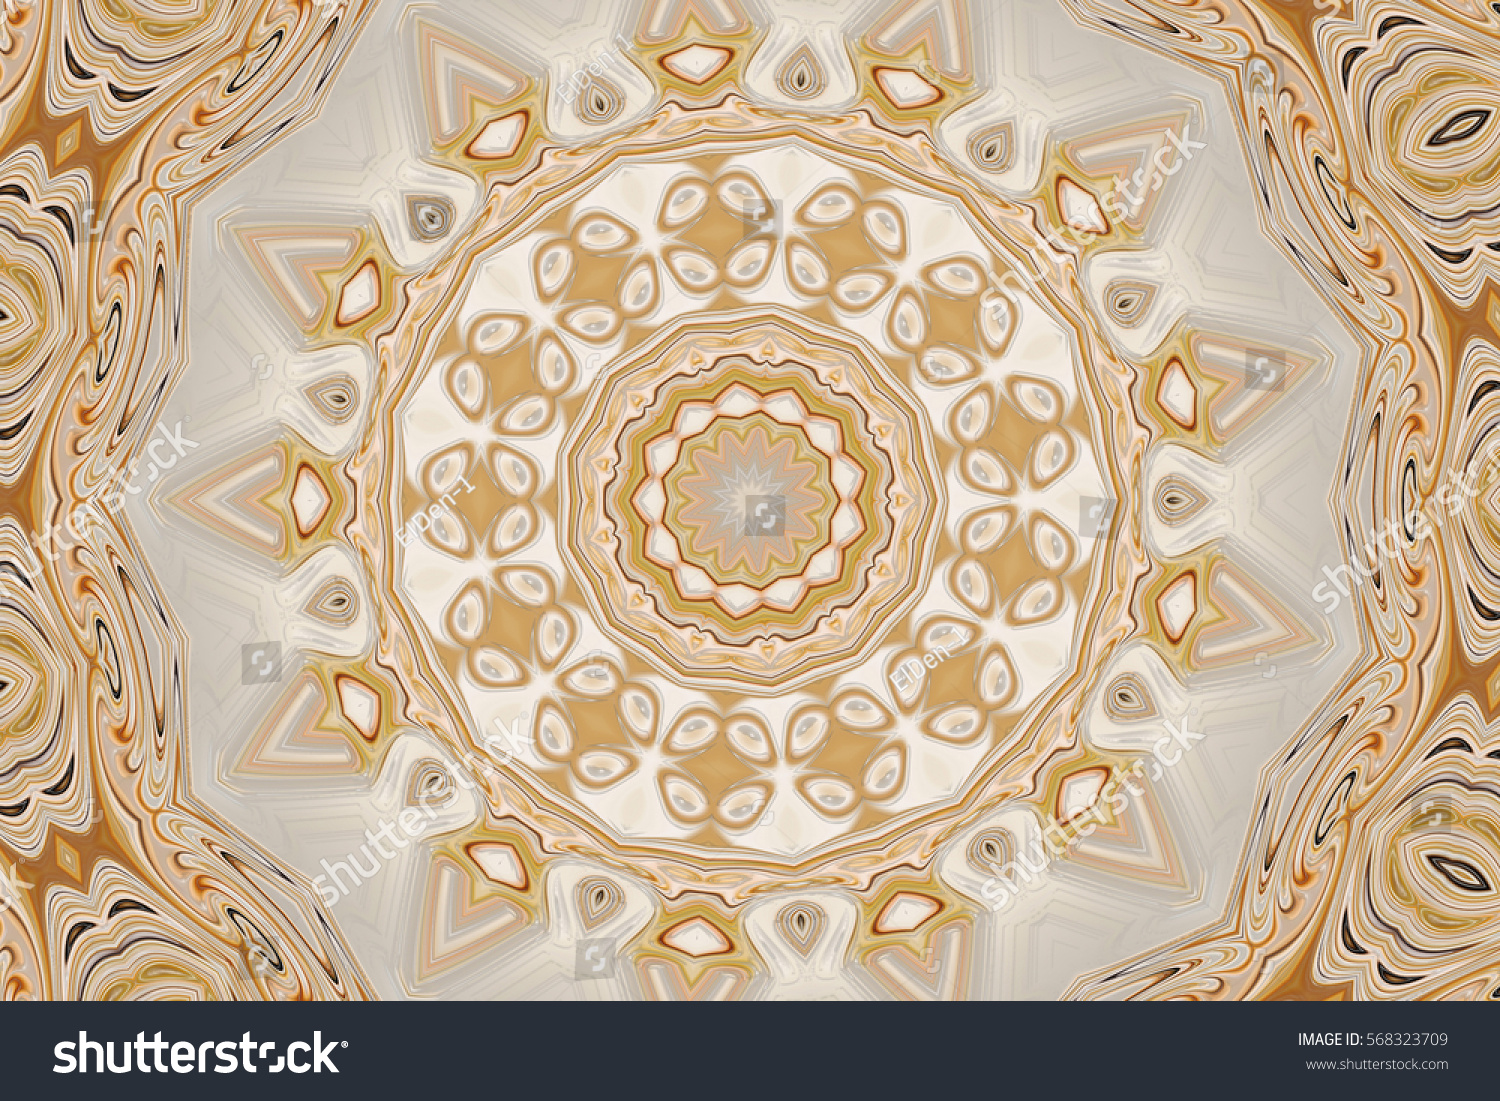 Best Wallpaper Marble Mandala - stock-photo-modern-kaleidoscope-background-decor-mandala-for-design-wallpaper-fabric-568323709  Photograph_315599.jpg